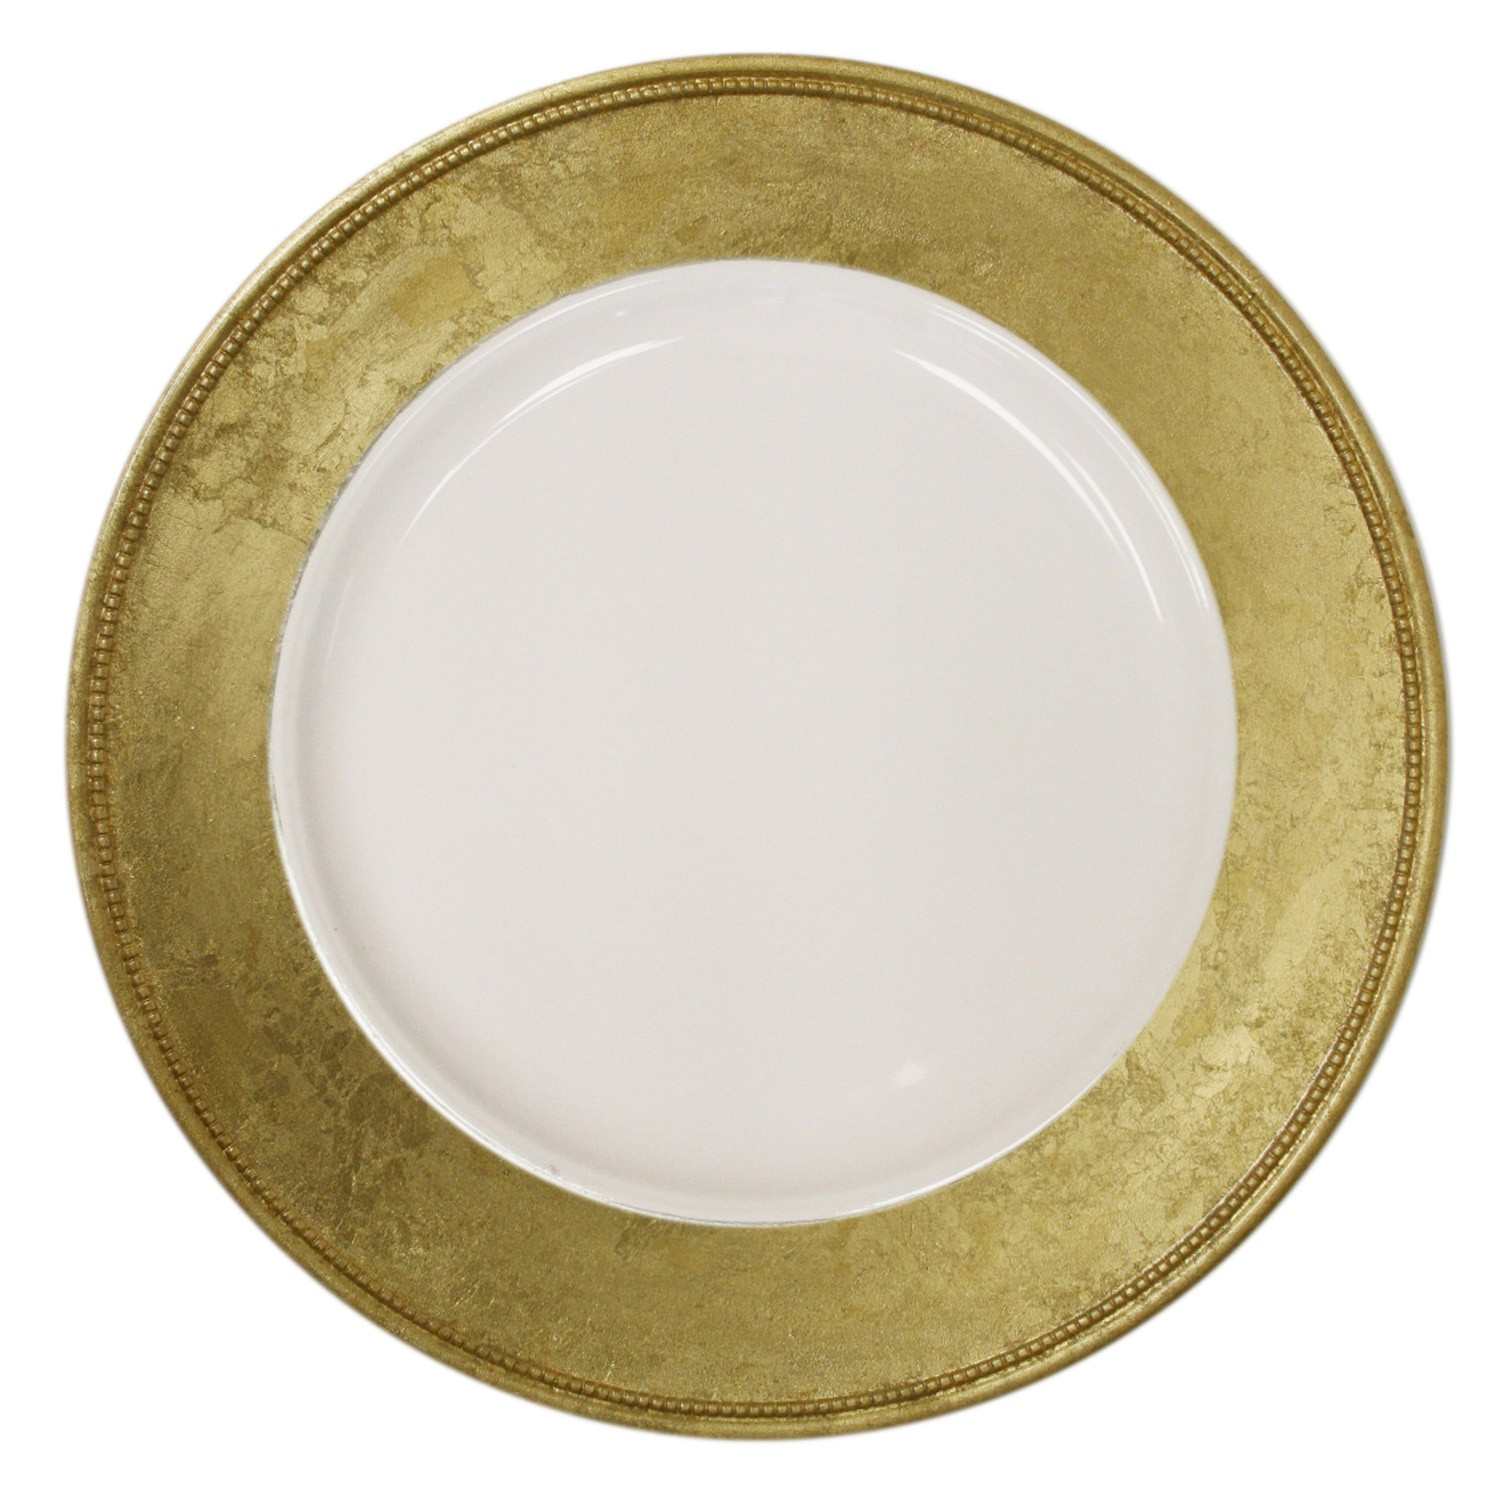 The Jay Companies A466GRK-W Round Gold Leaf Rim Charger Plate 13&